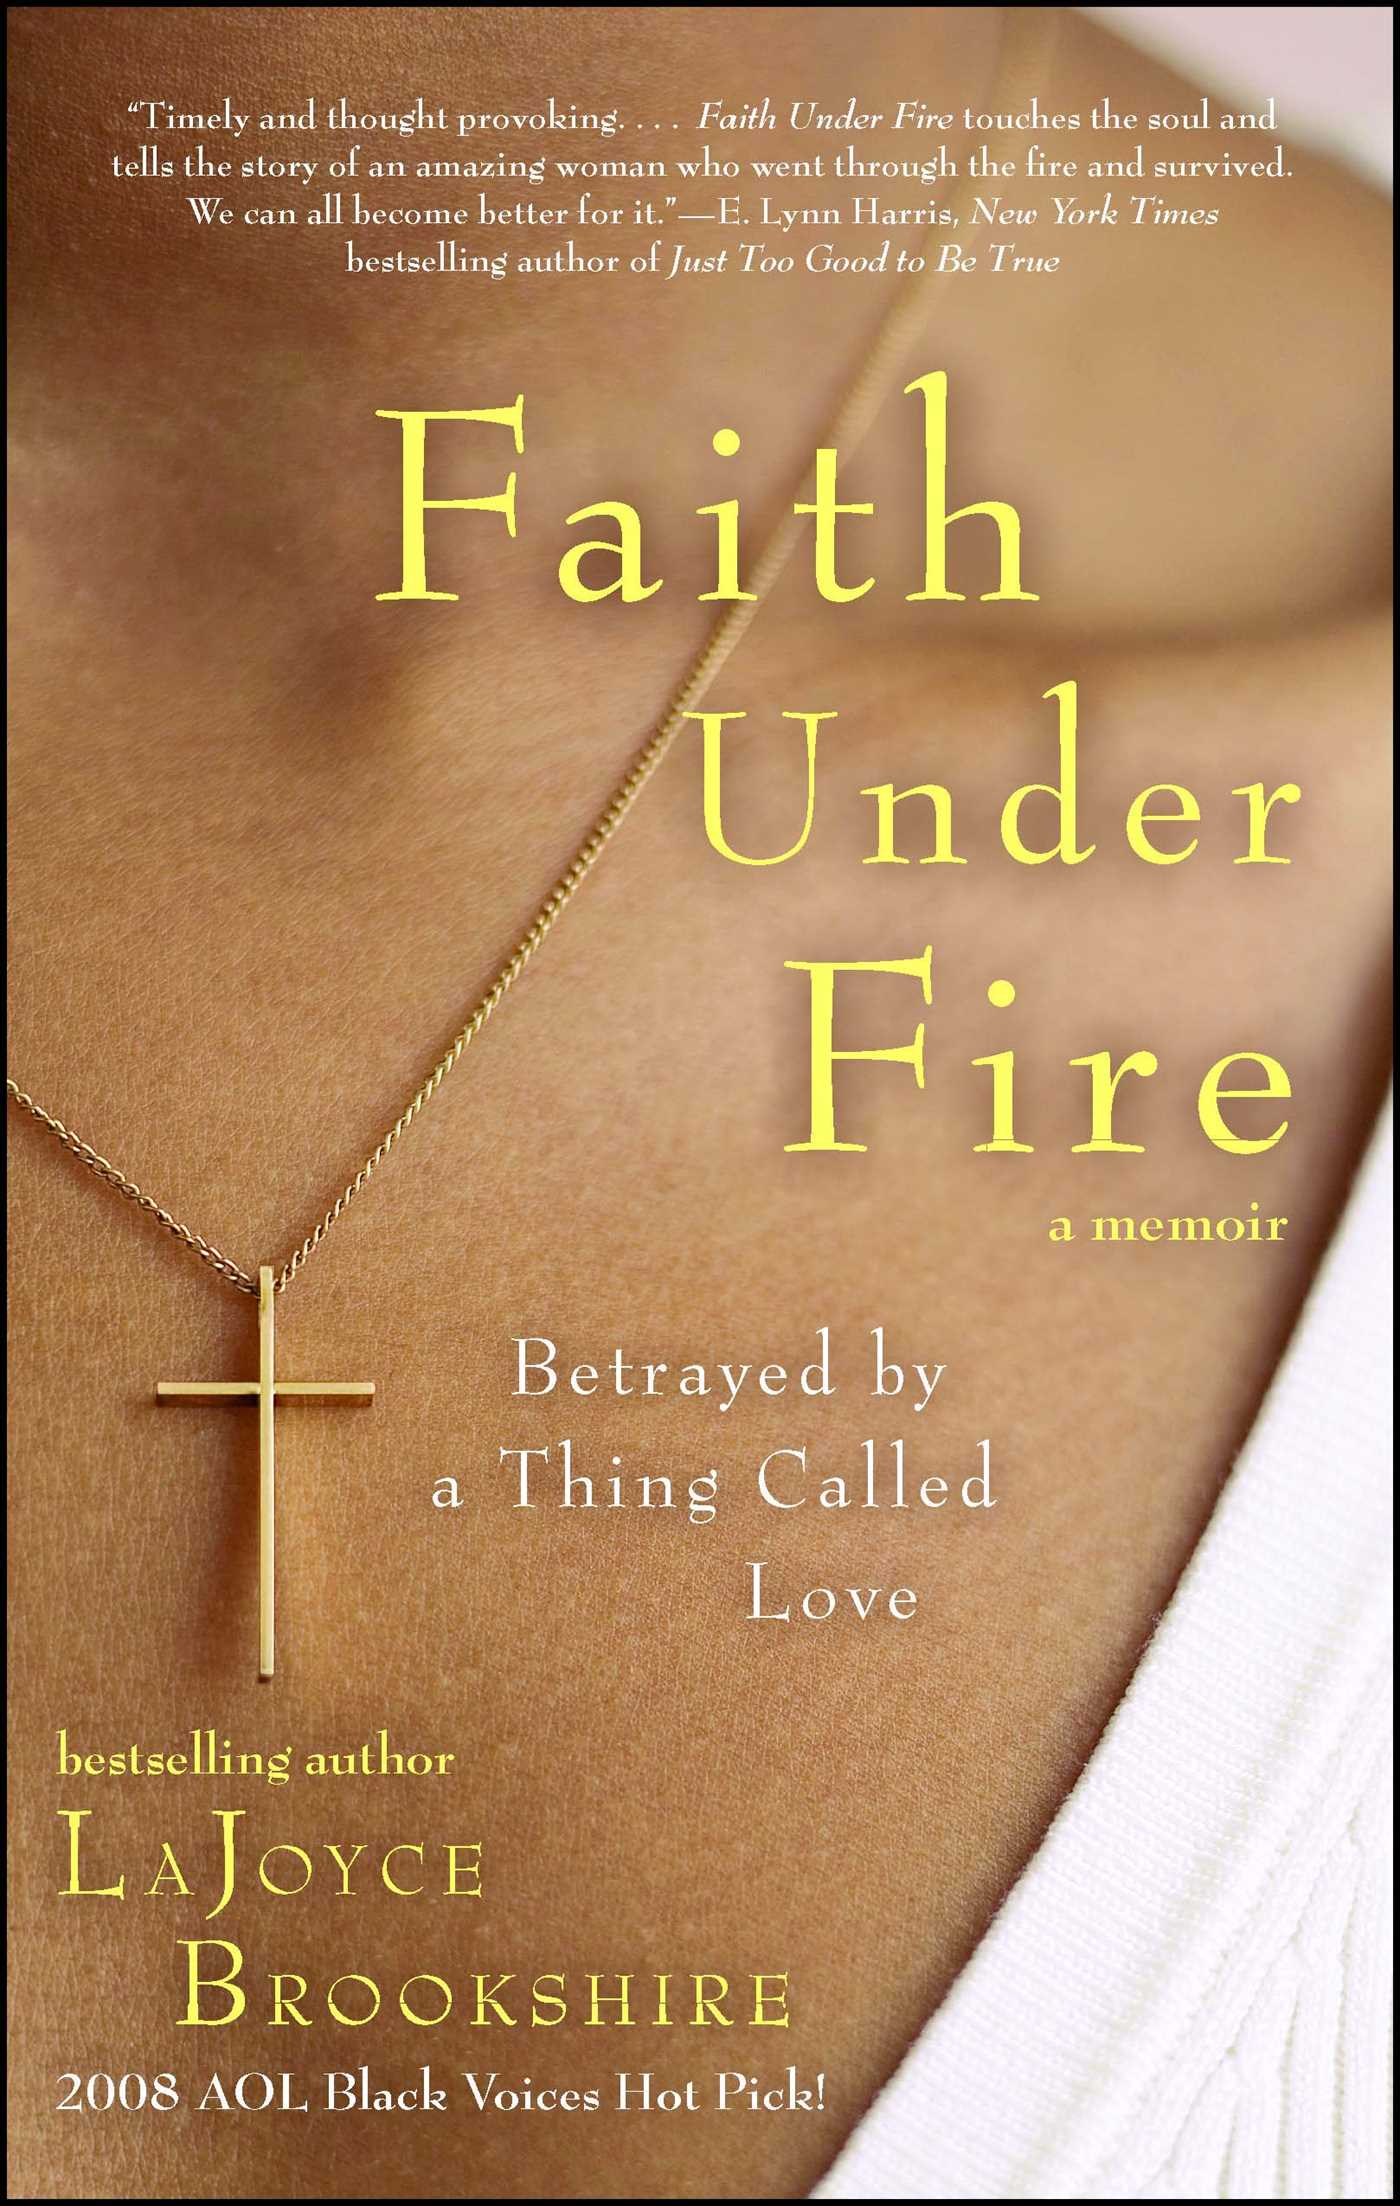 Faith-under-fire-9781416596011_hr